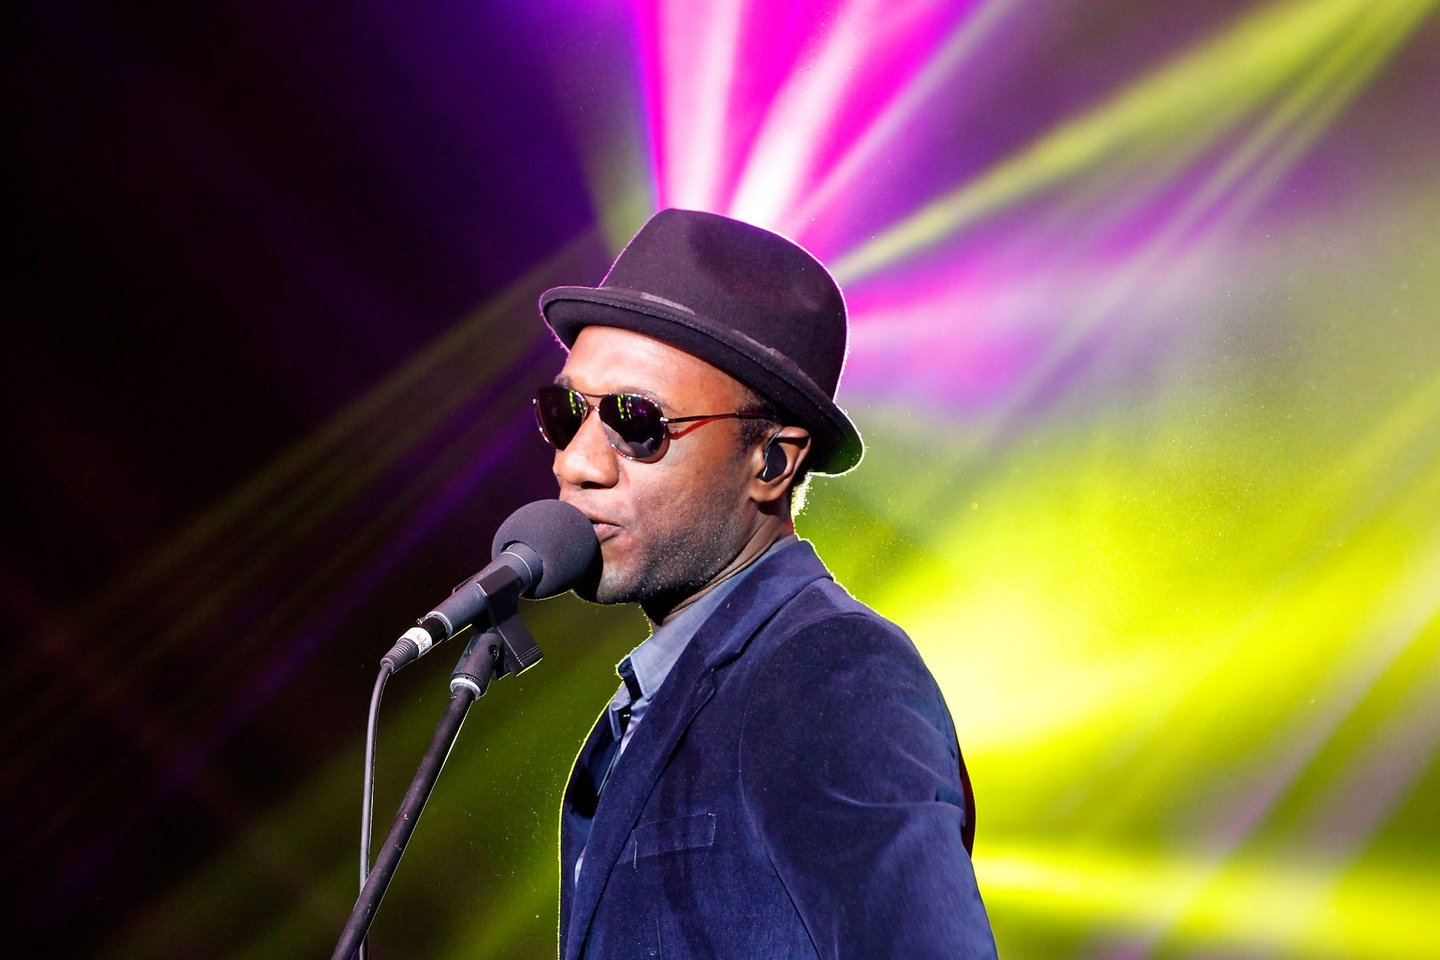 BEIJING, CHINA - APRIL 22: Singer Aloe Blacc performs during the exclusive 'For the Love of Cinema' event hosted by Swiss watch manufacturer IWC Schaffhausen in the role as new sponsor of the Beijing International Film Festival, at the Ming Dynasty City Wall on April 22, 2013 in Beijing, China. (Photo by Getty Images for IWC)